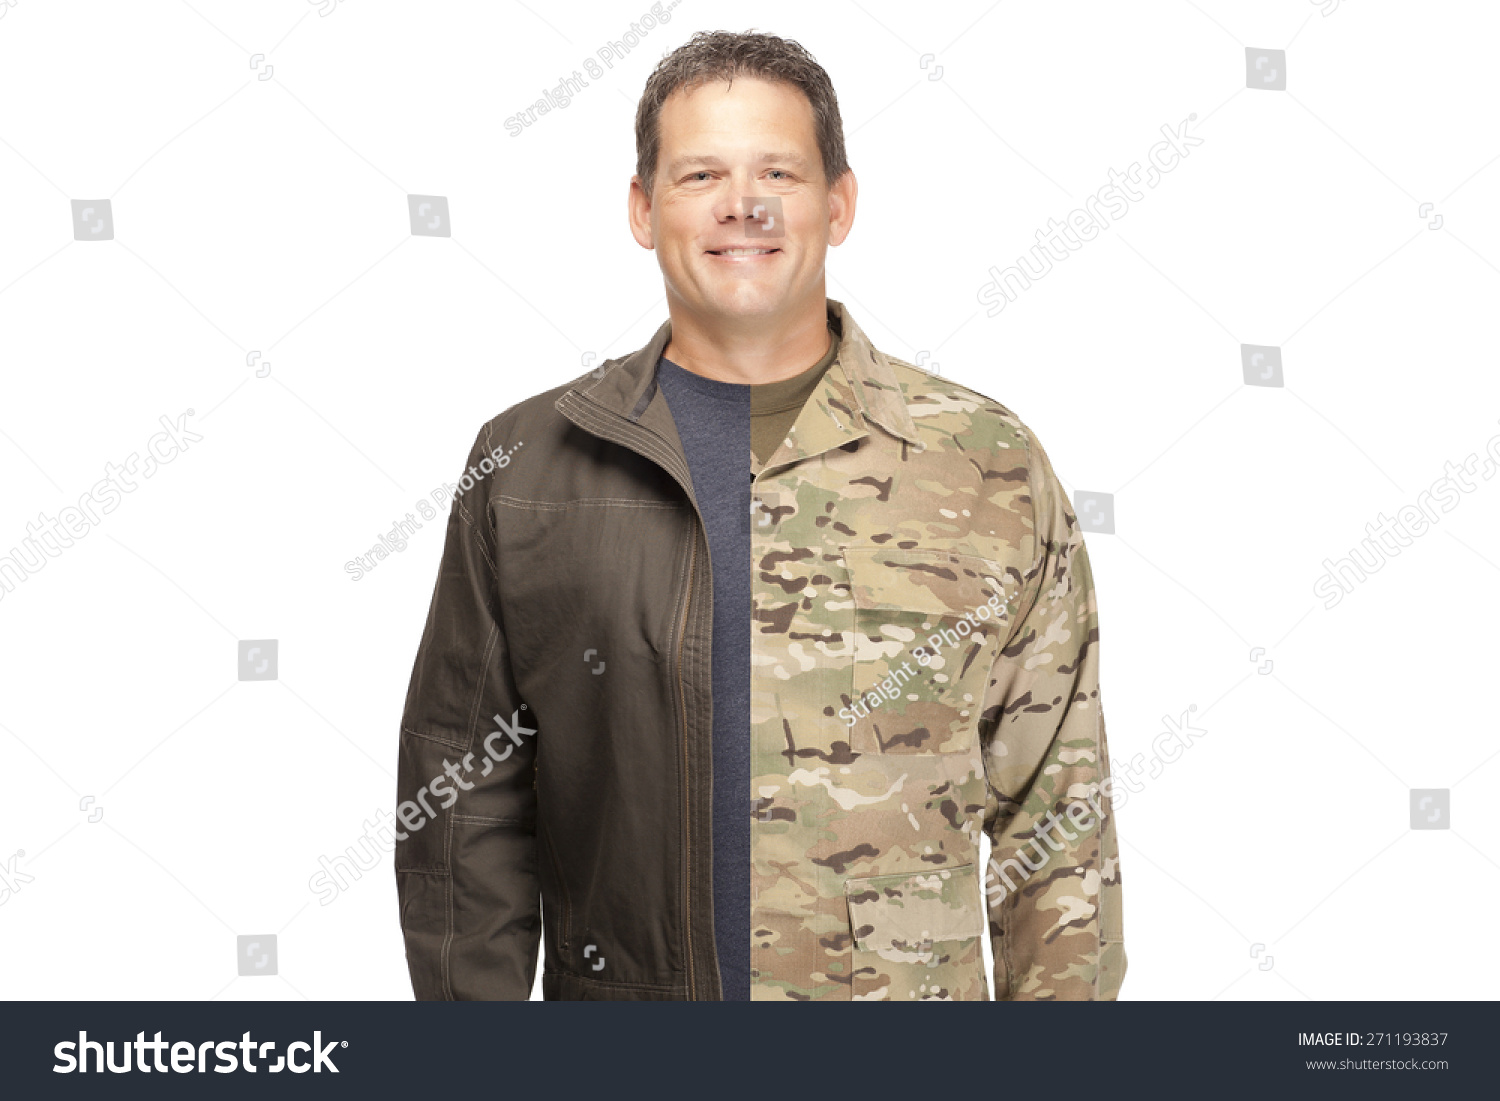 veteran ier military civilian transition stock photo  veteran ier military to civilian transition